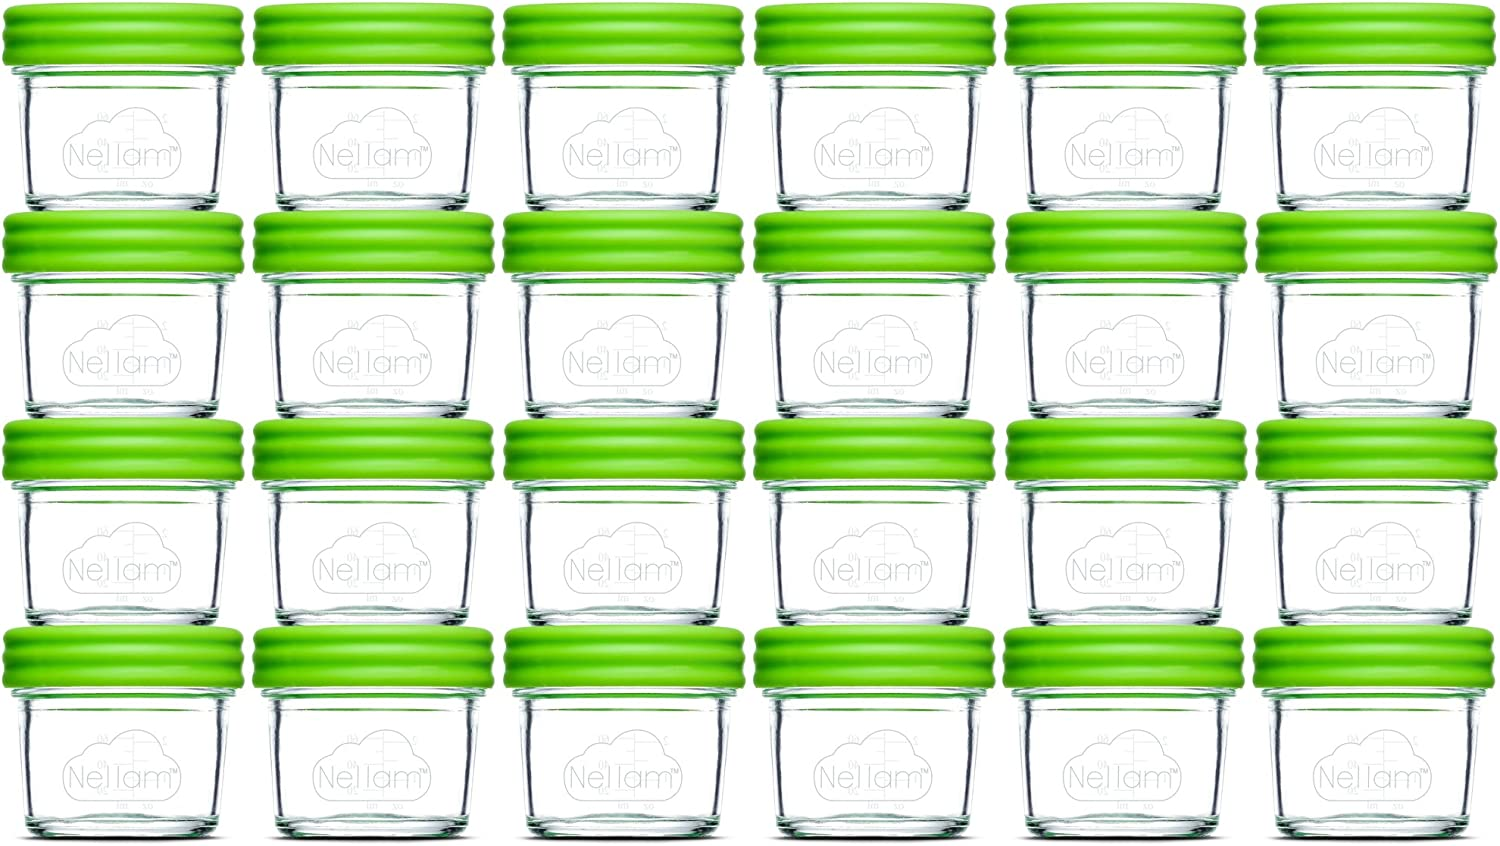 Nellam Baby Food Storage Containers - Leakproof, Airtight, Glass Jars for Freezing & Homemade Babyfood Prep - Reusable, BPA Free, 24 x 4oz Set, that is Microwave & Freezer Safe